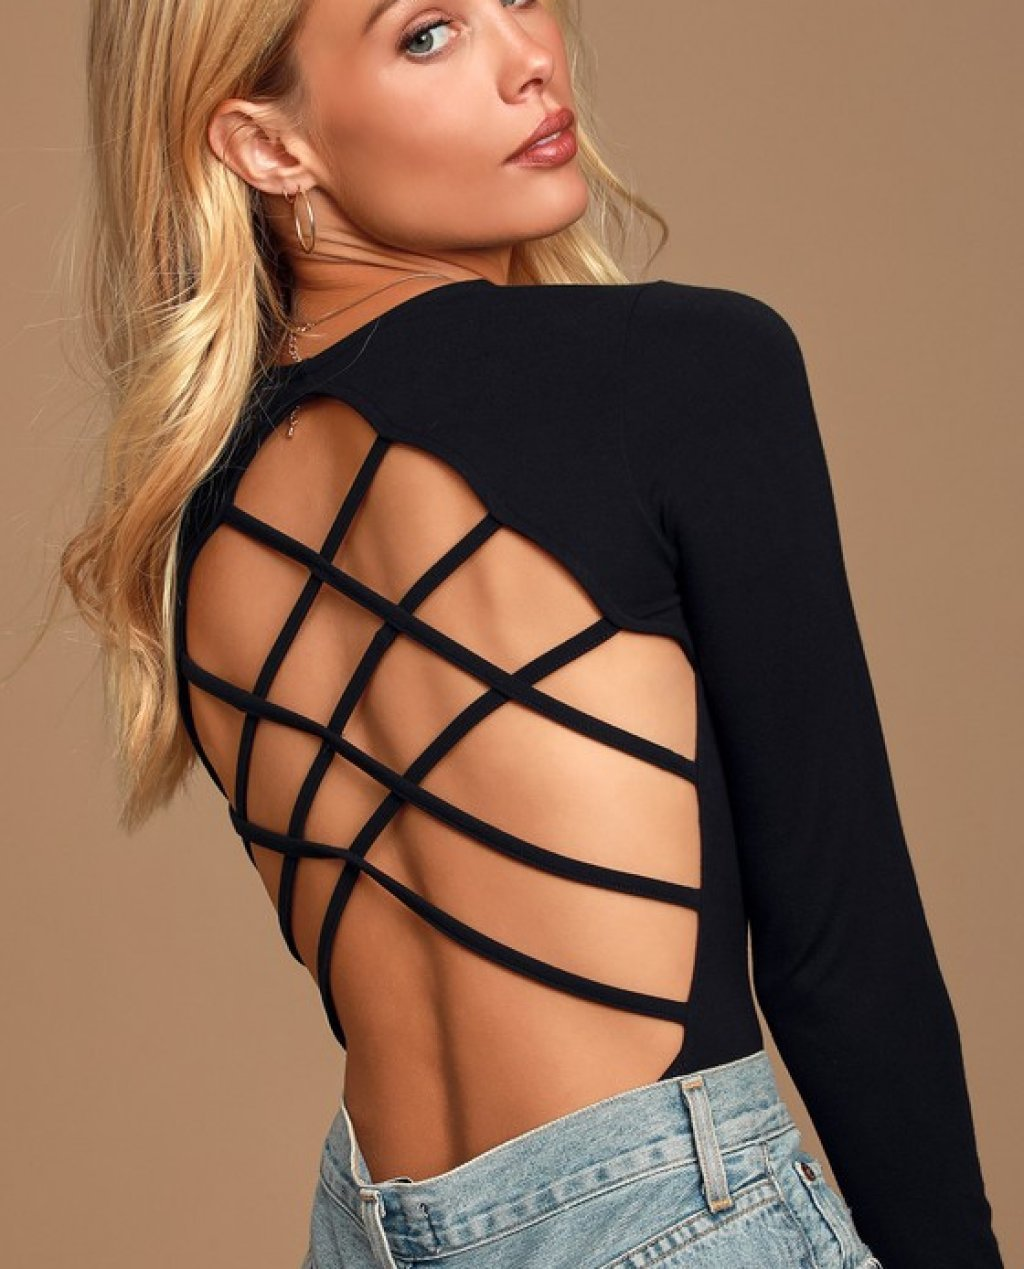 Simply Irresistible Black Strappy Backless Bodysuit